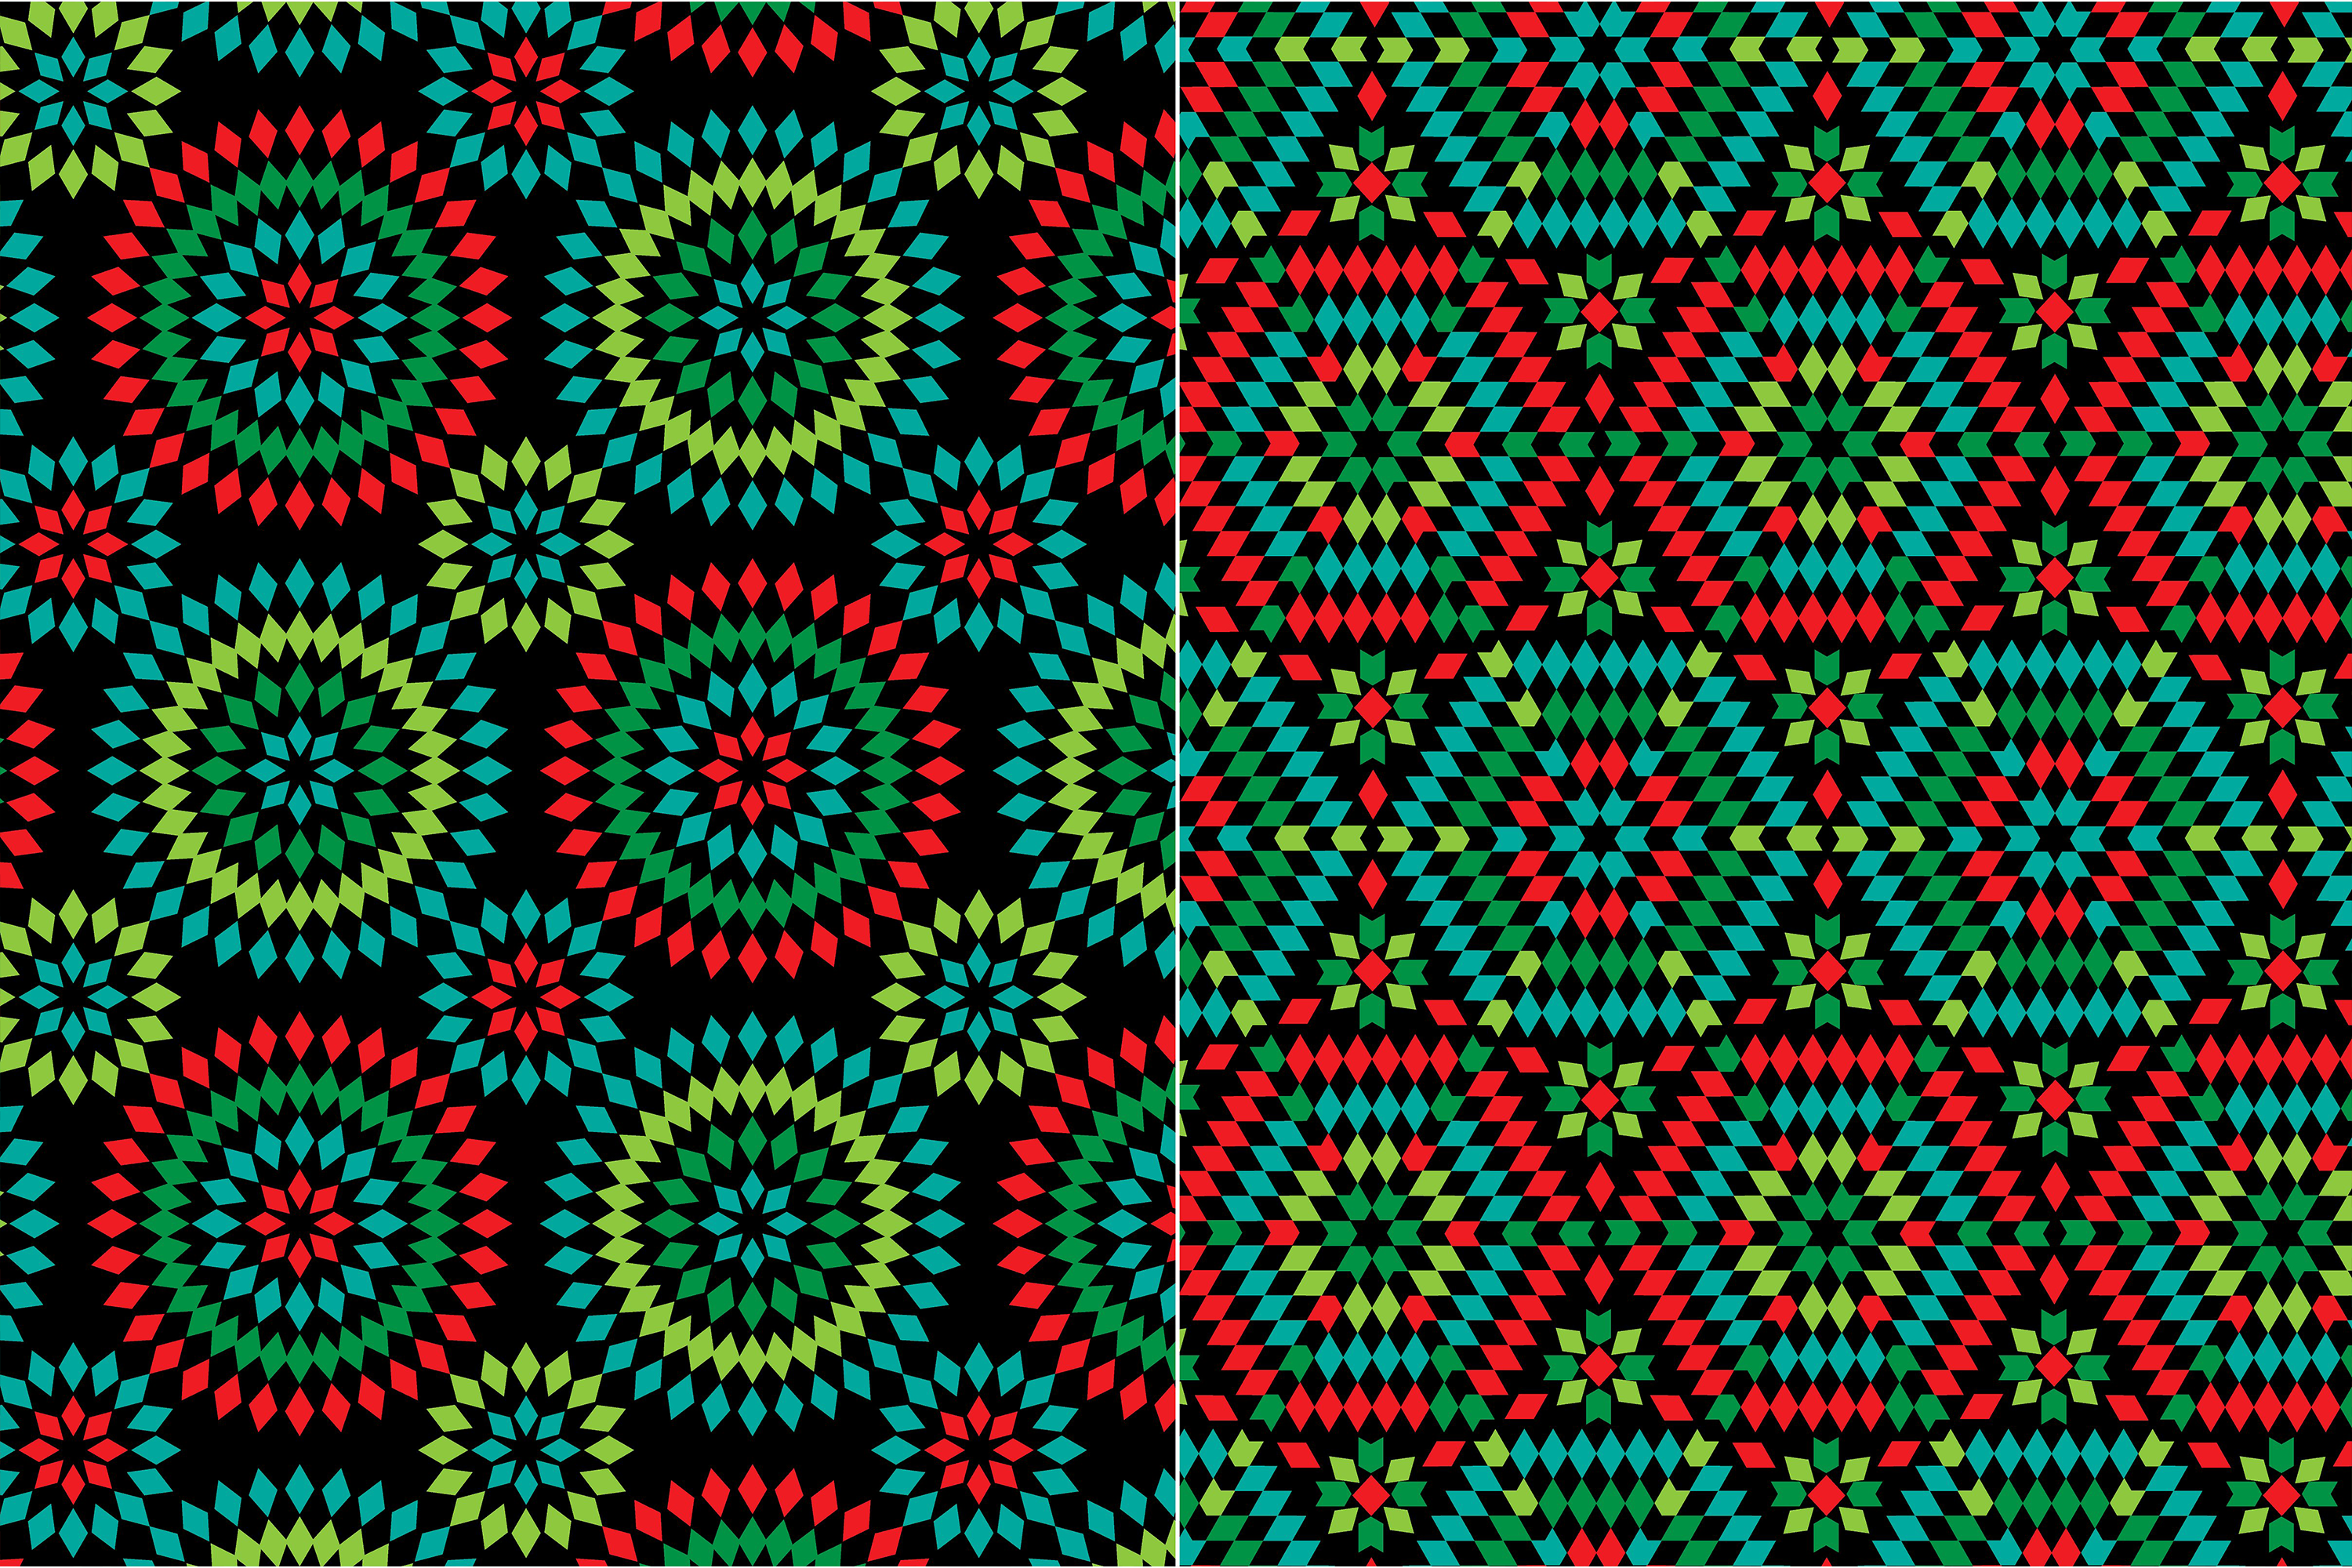 Granny Square Patterns on Black example image 3